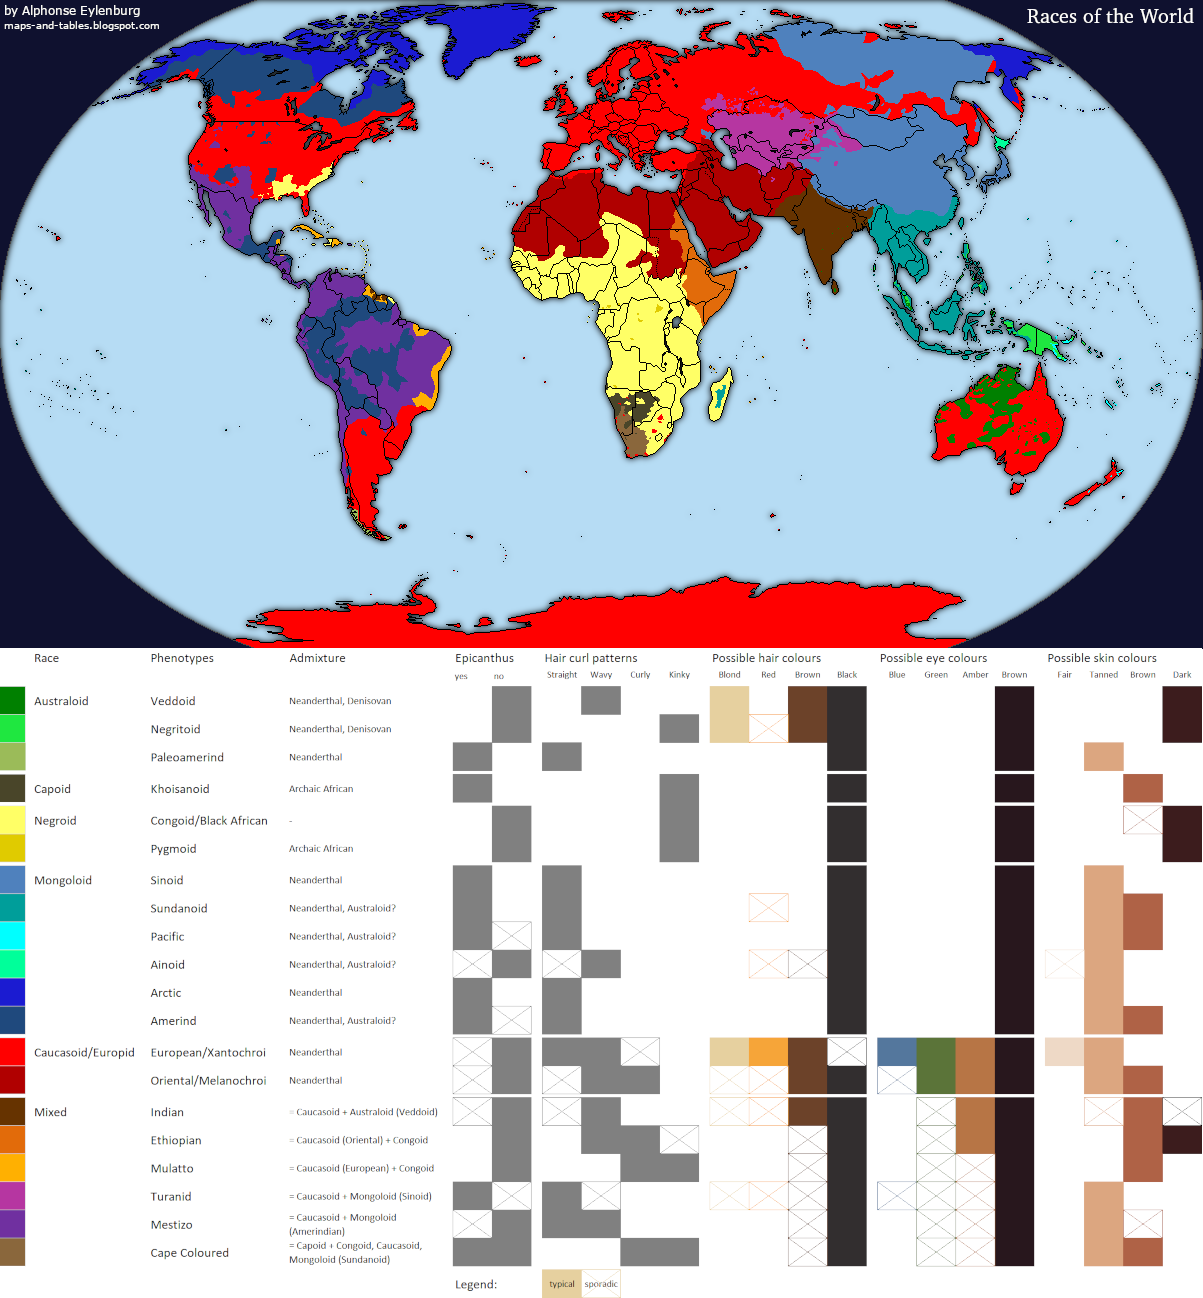 Maps and Tables: World Map of Races